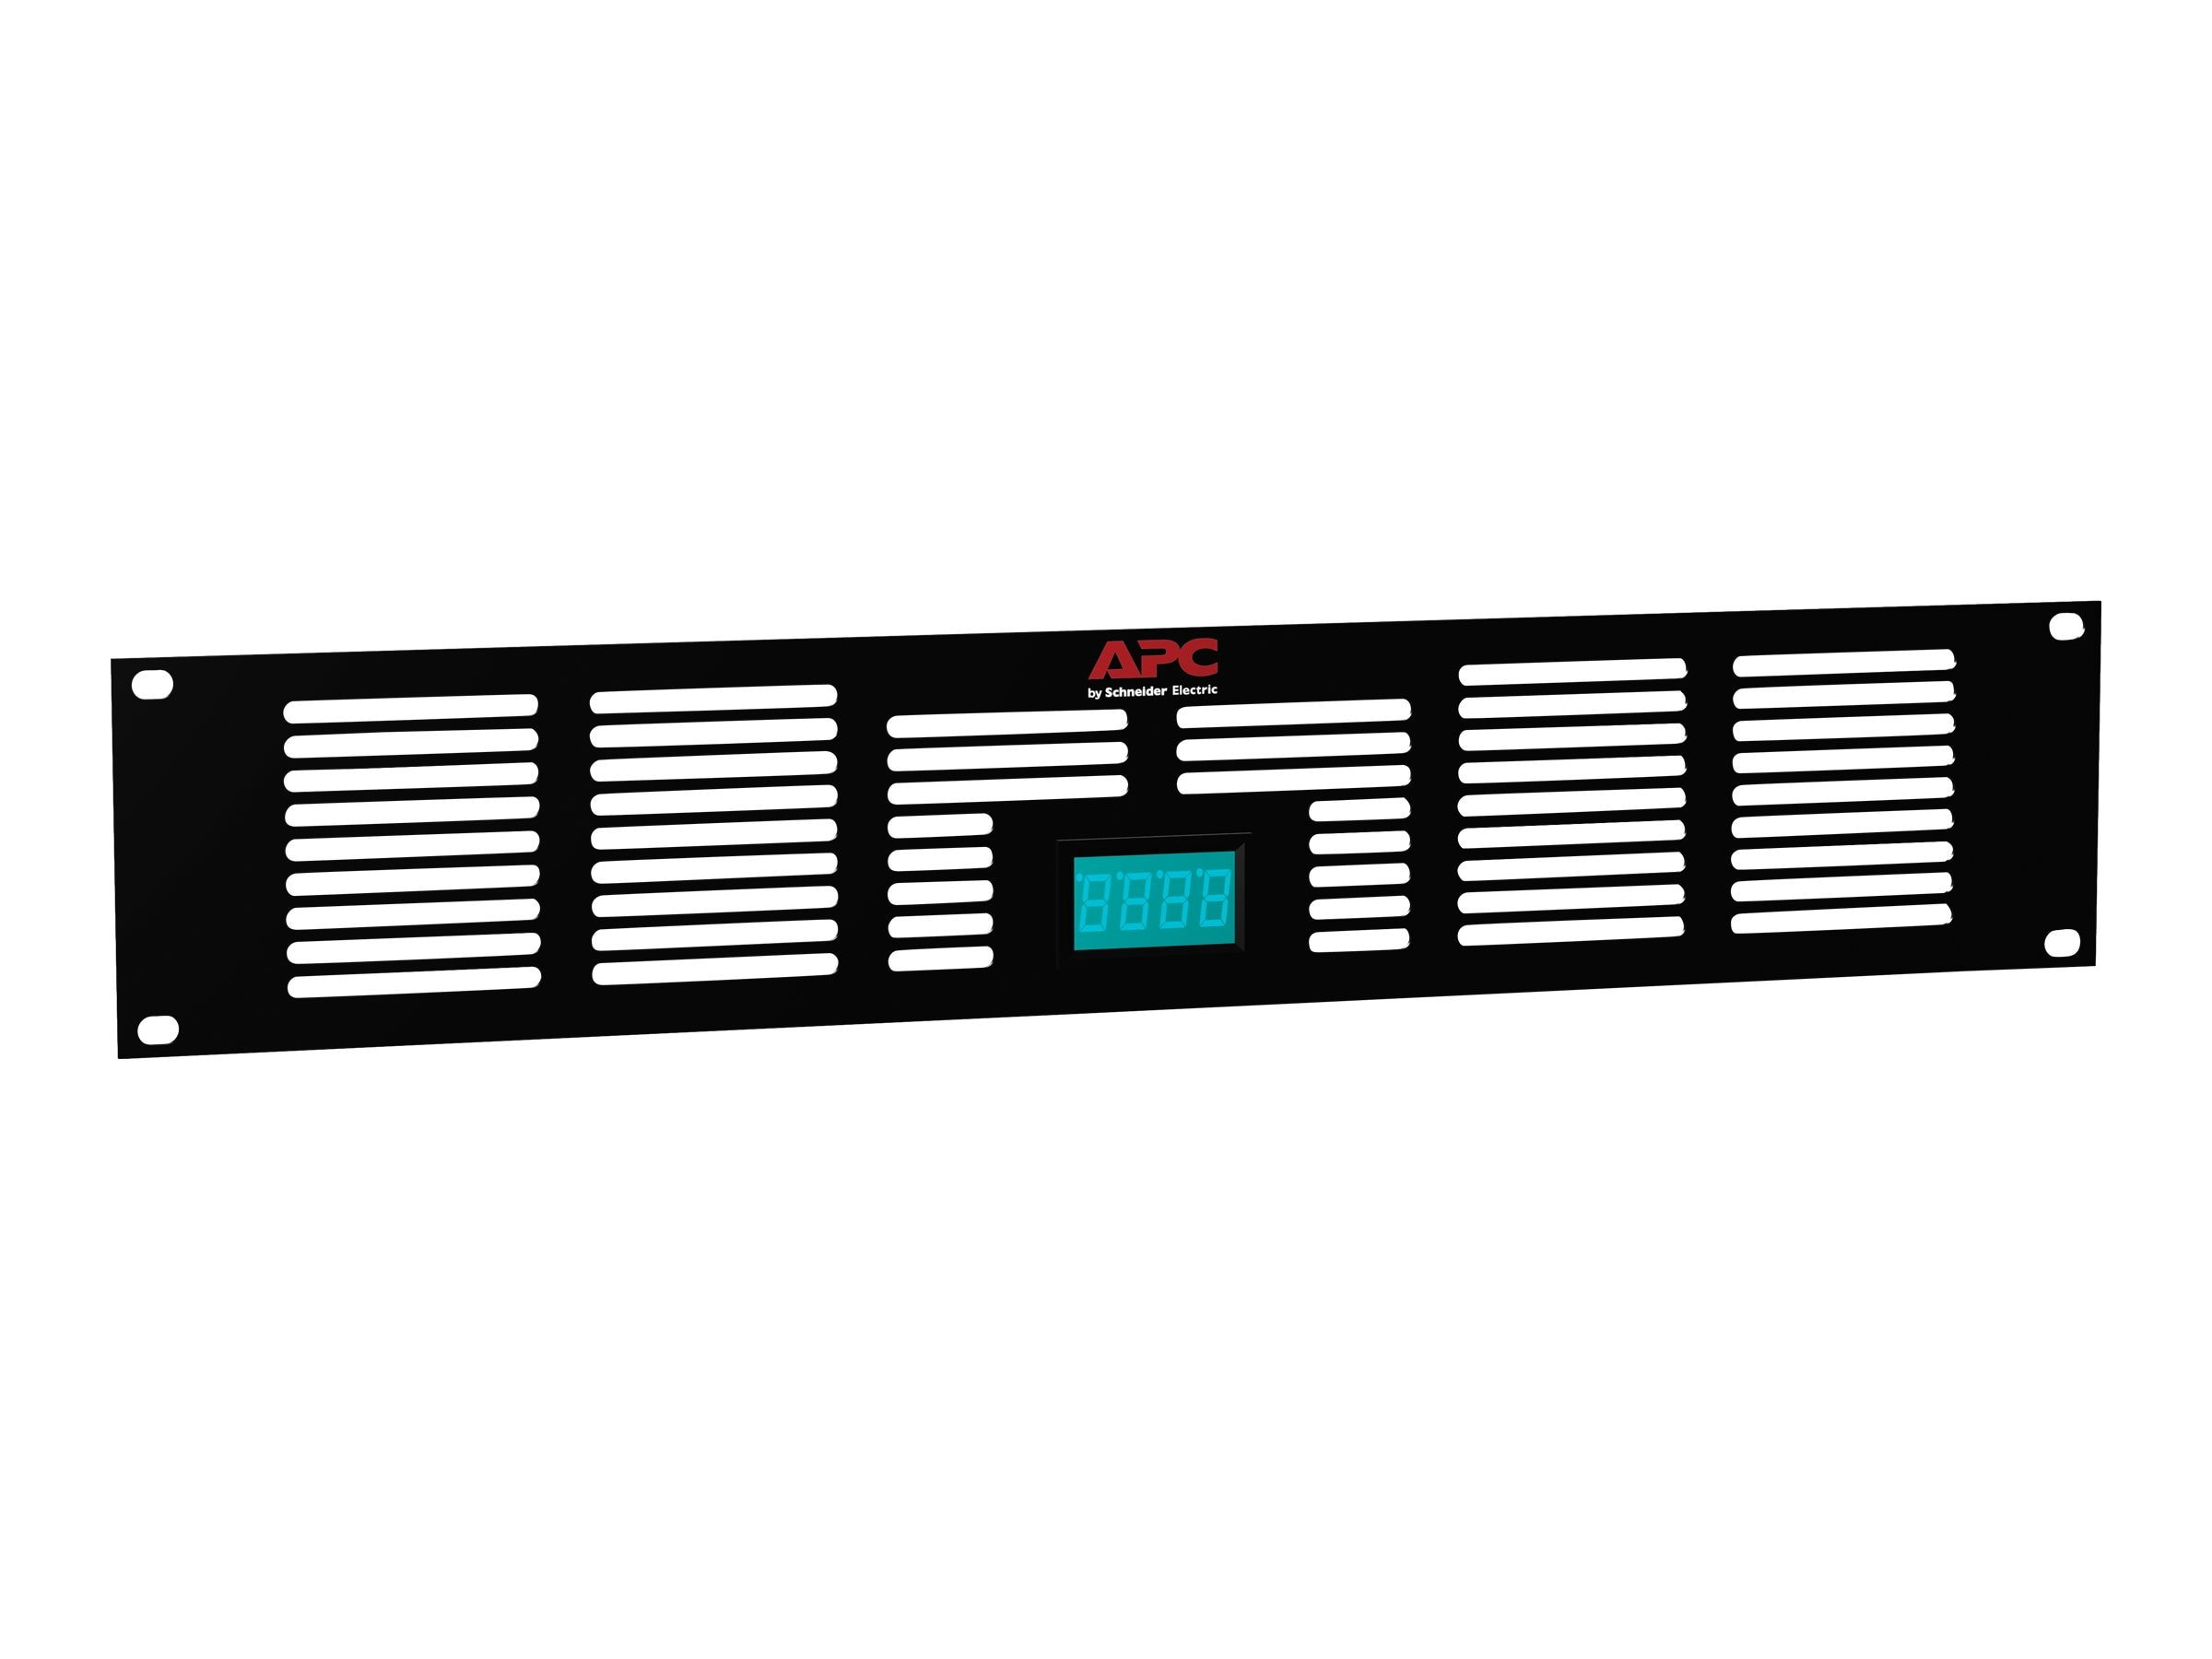 APC NetShelter AV 2U Vent Panel with Temperature Display